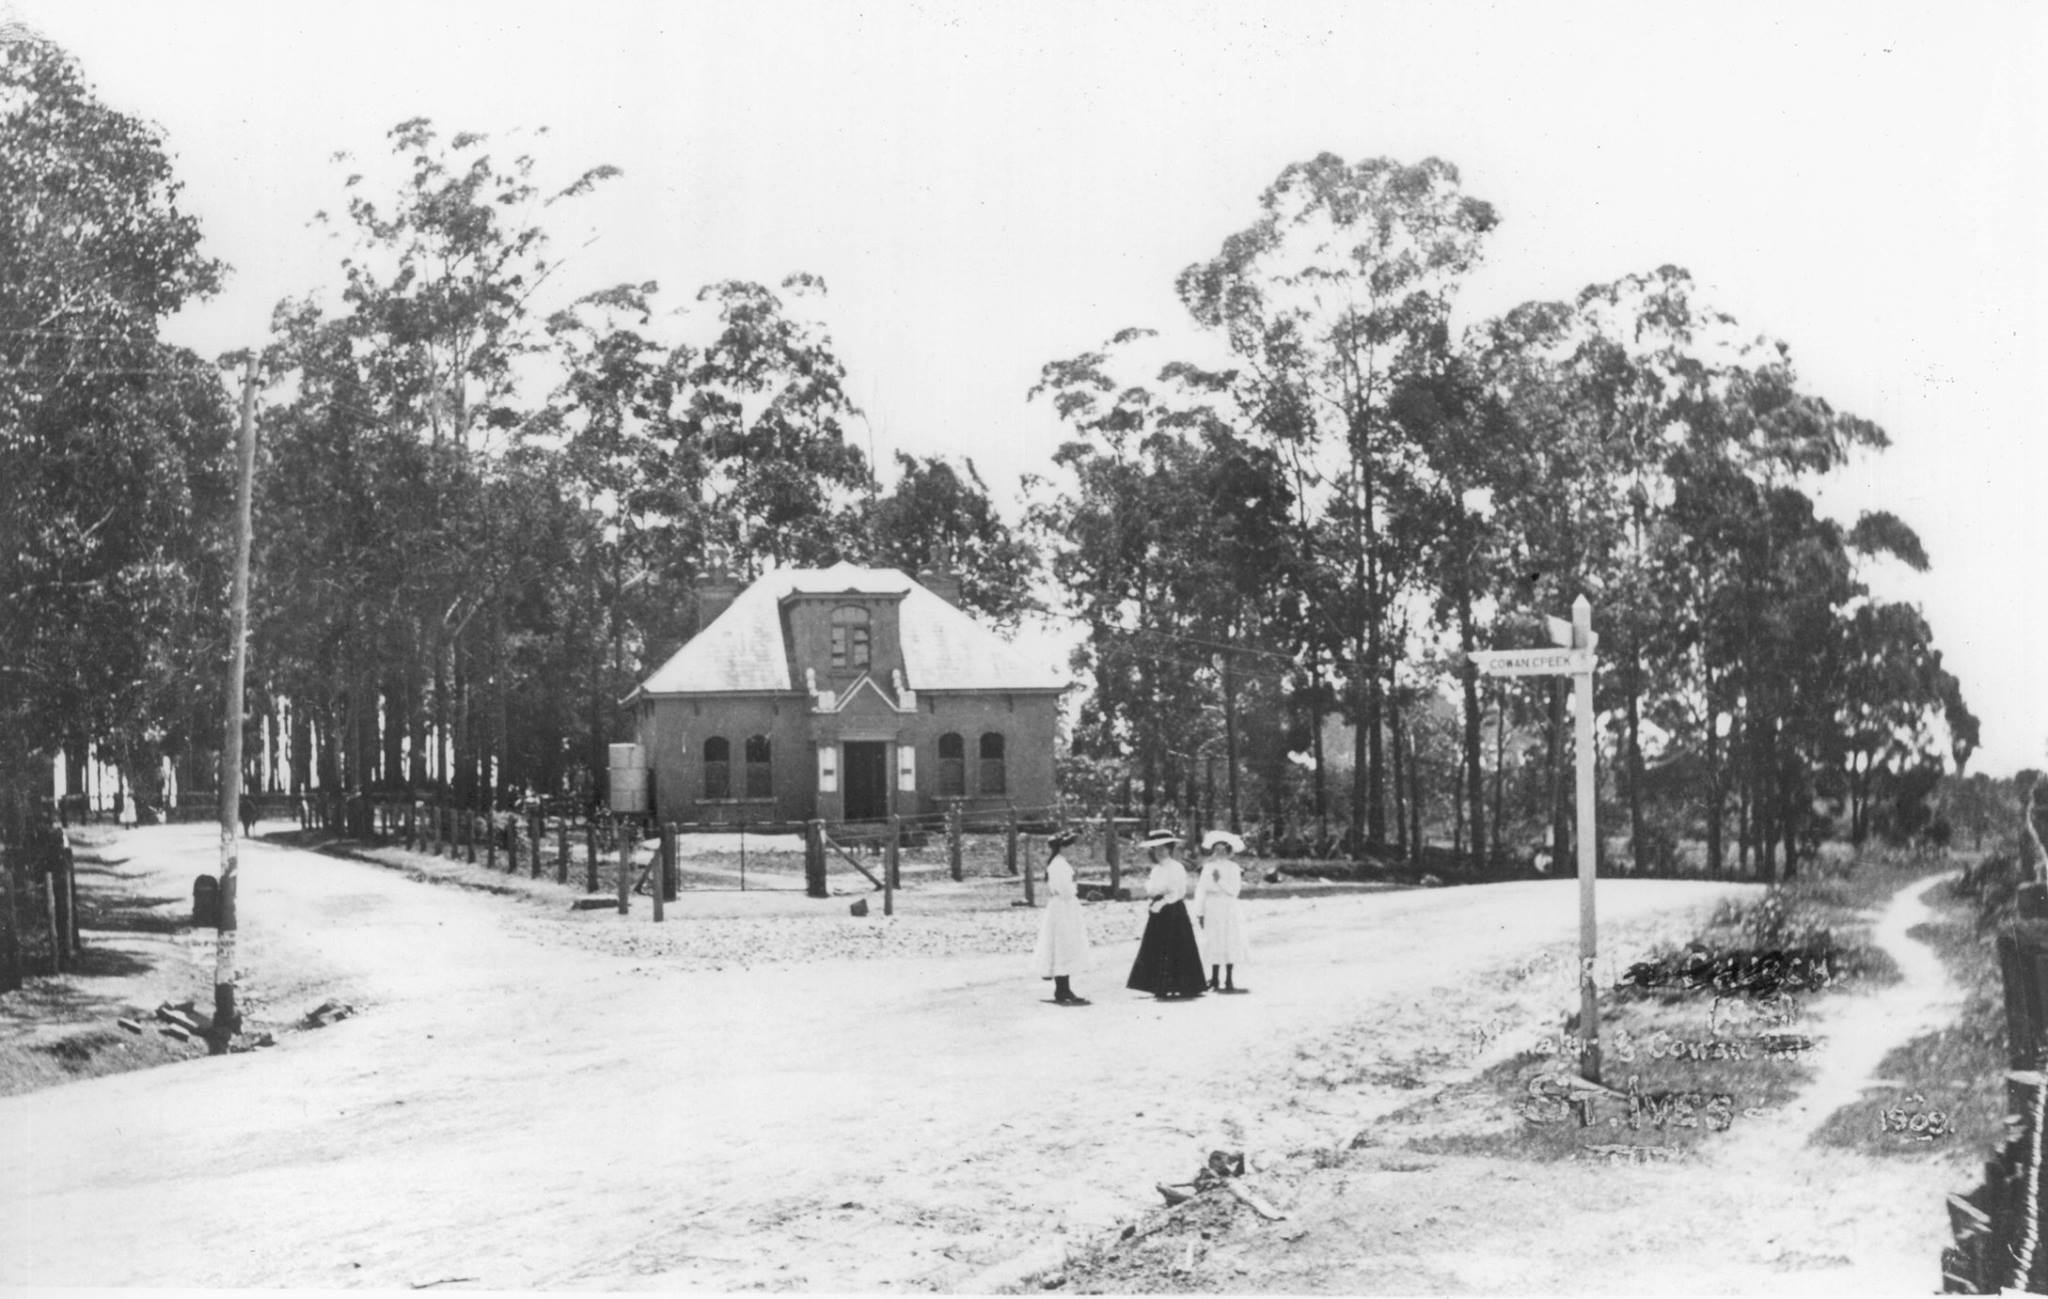 70fb4baf5 The corner of Pittwater Road (now Mona Vale Road) and Cowan Road